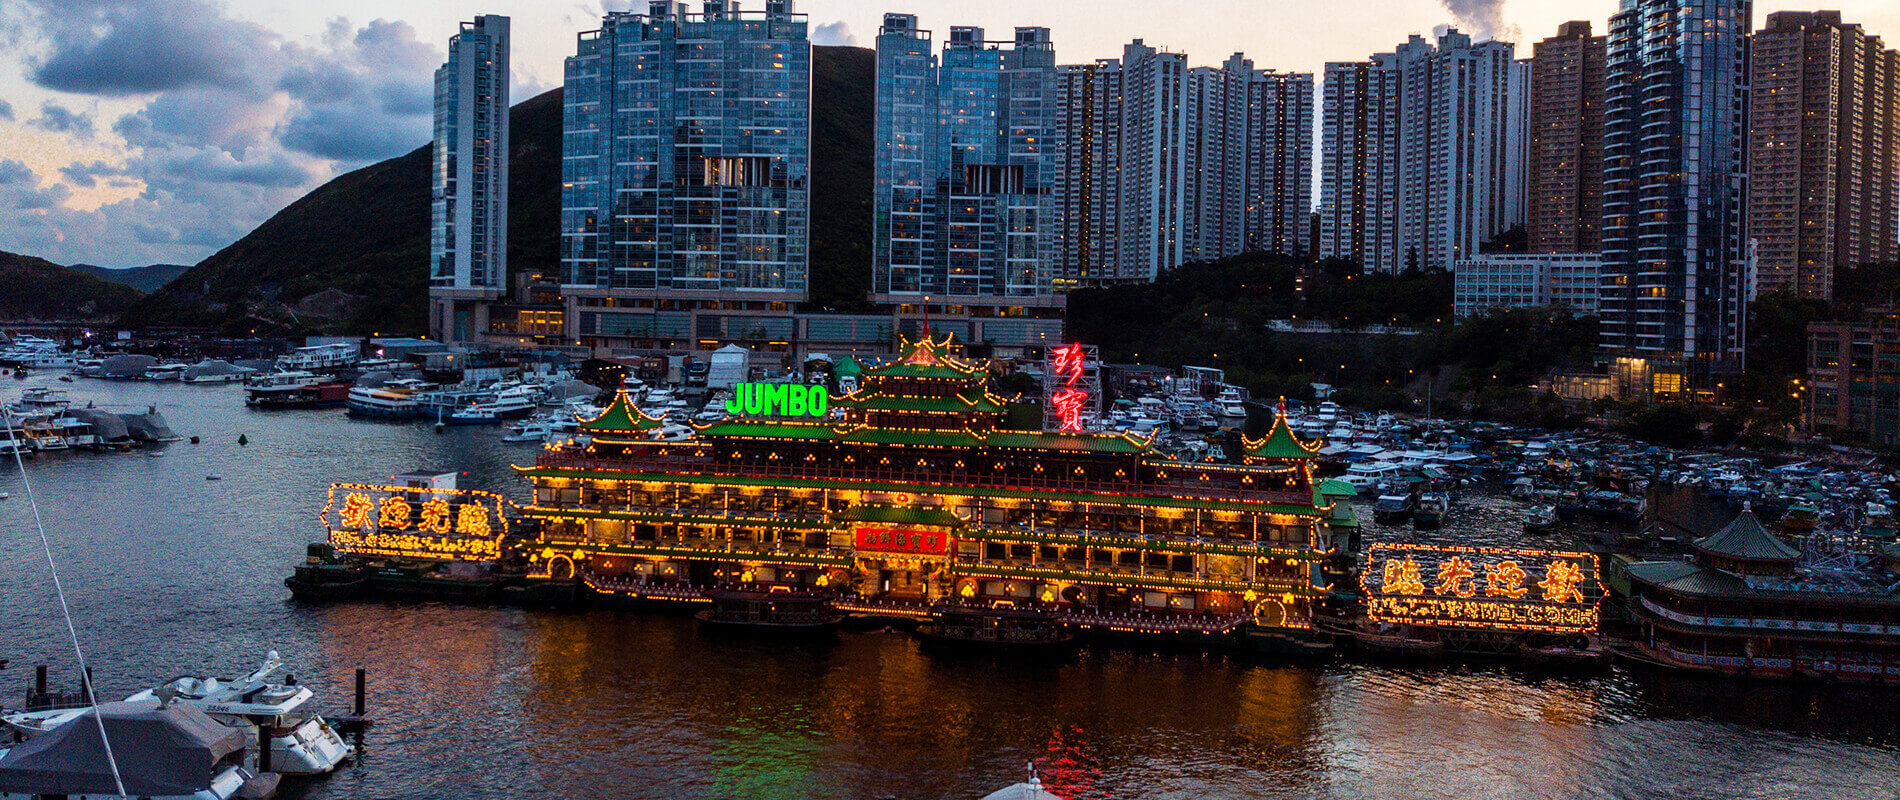 Jumbo Kingdom, A Majestic Floating Restaurant in Hong Kong